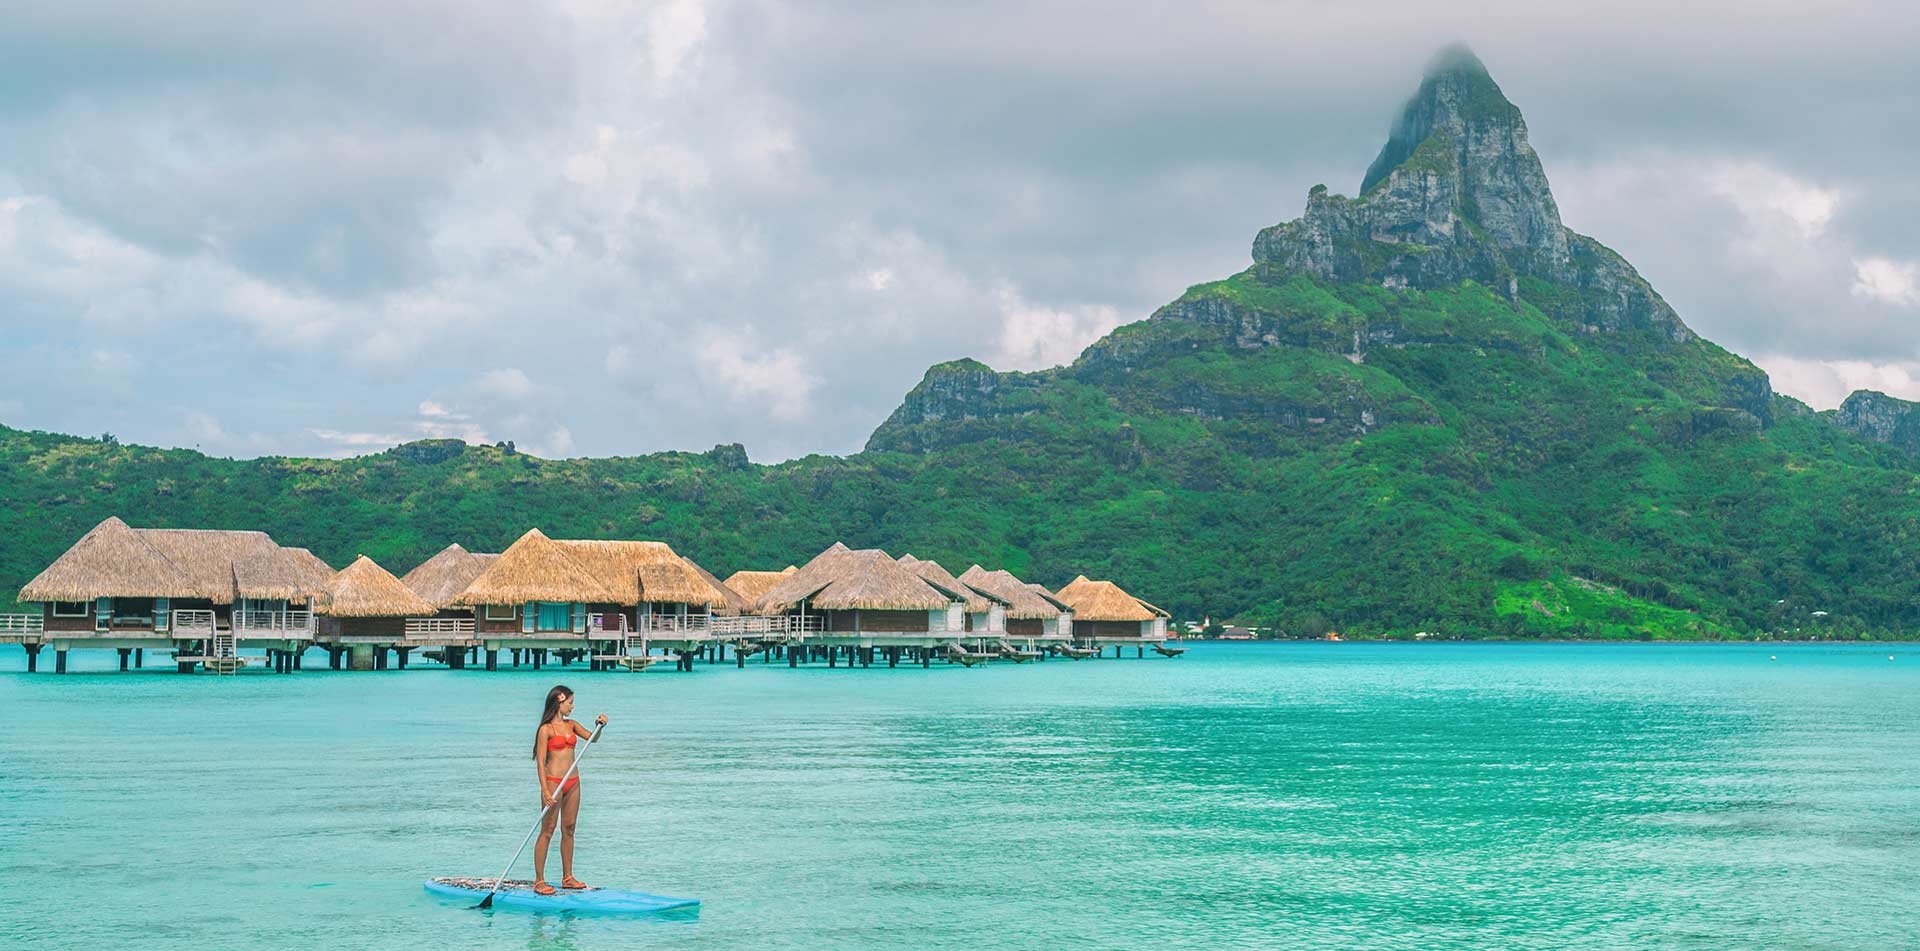 South Pacific Tahiti Bora Bora woman paddleboarding clear water thatched huts lush mountains - luxury vacation destinations